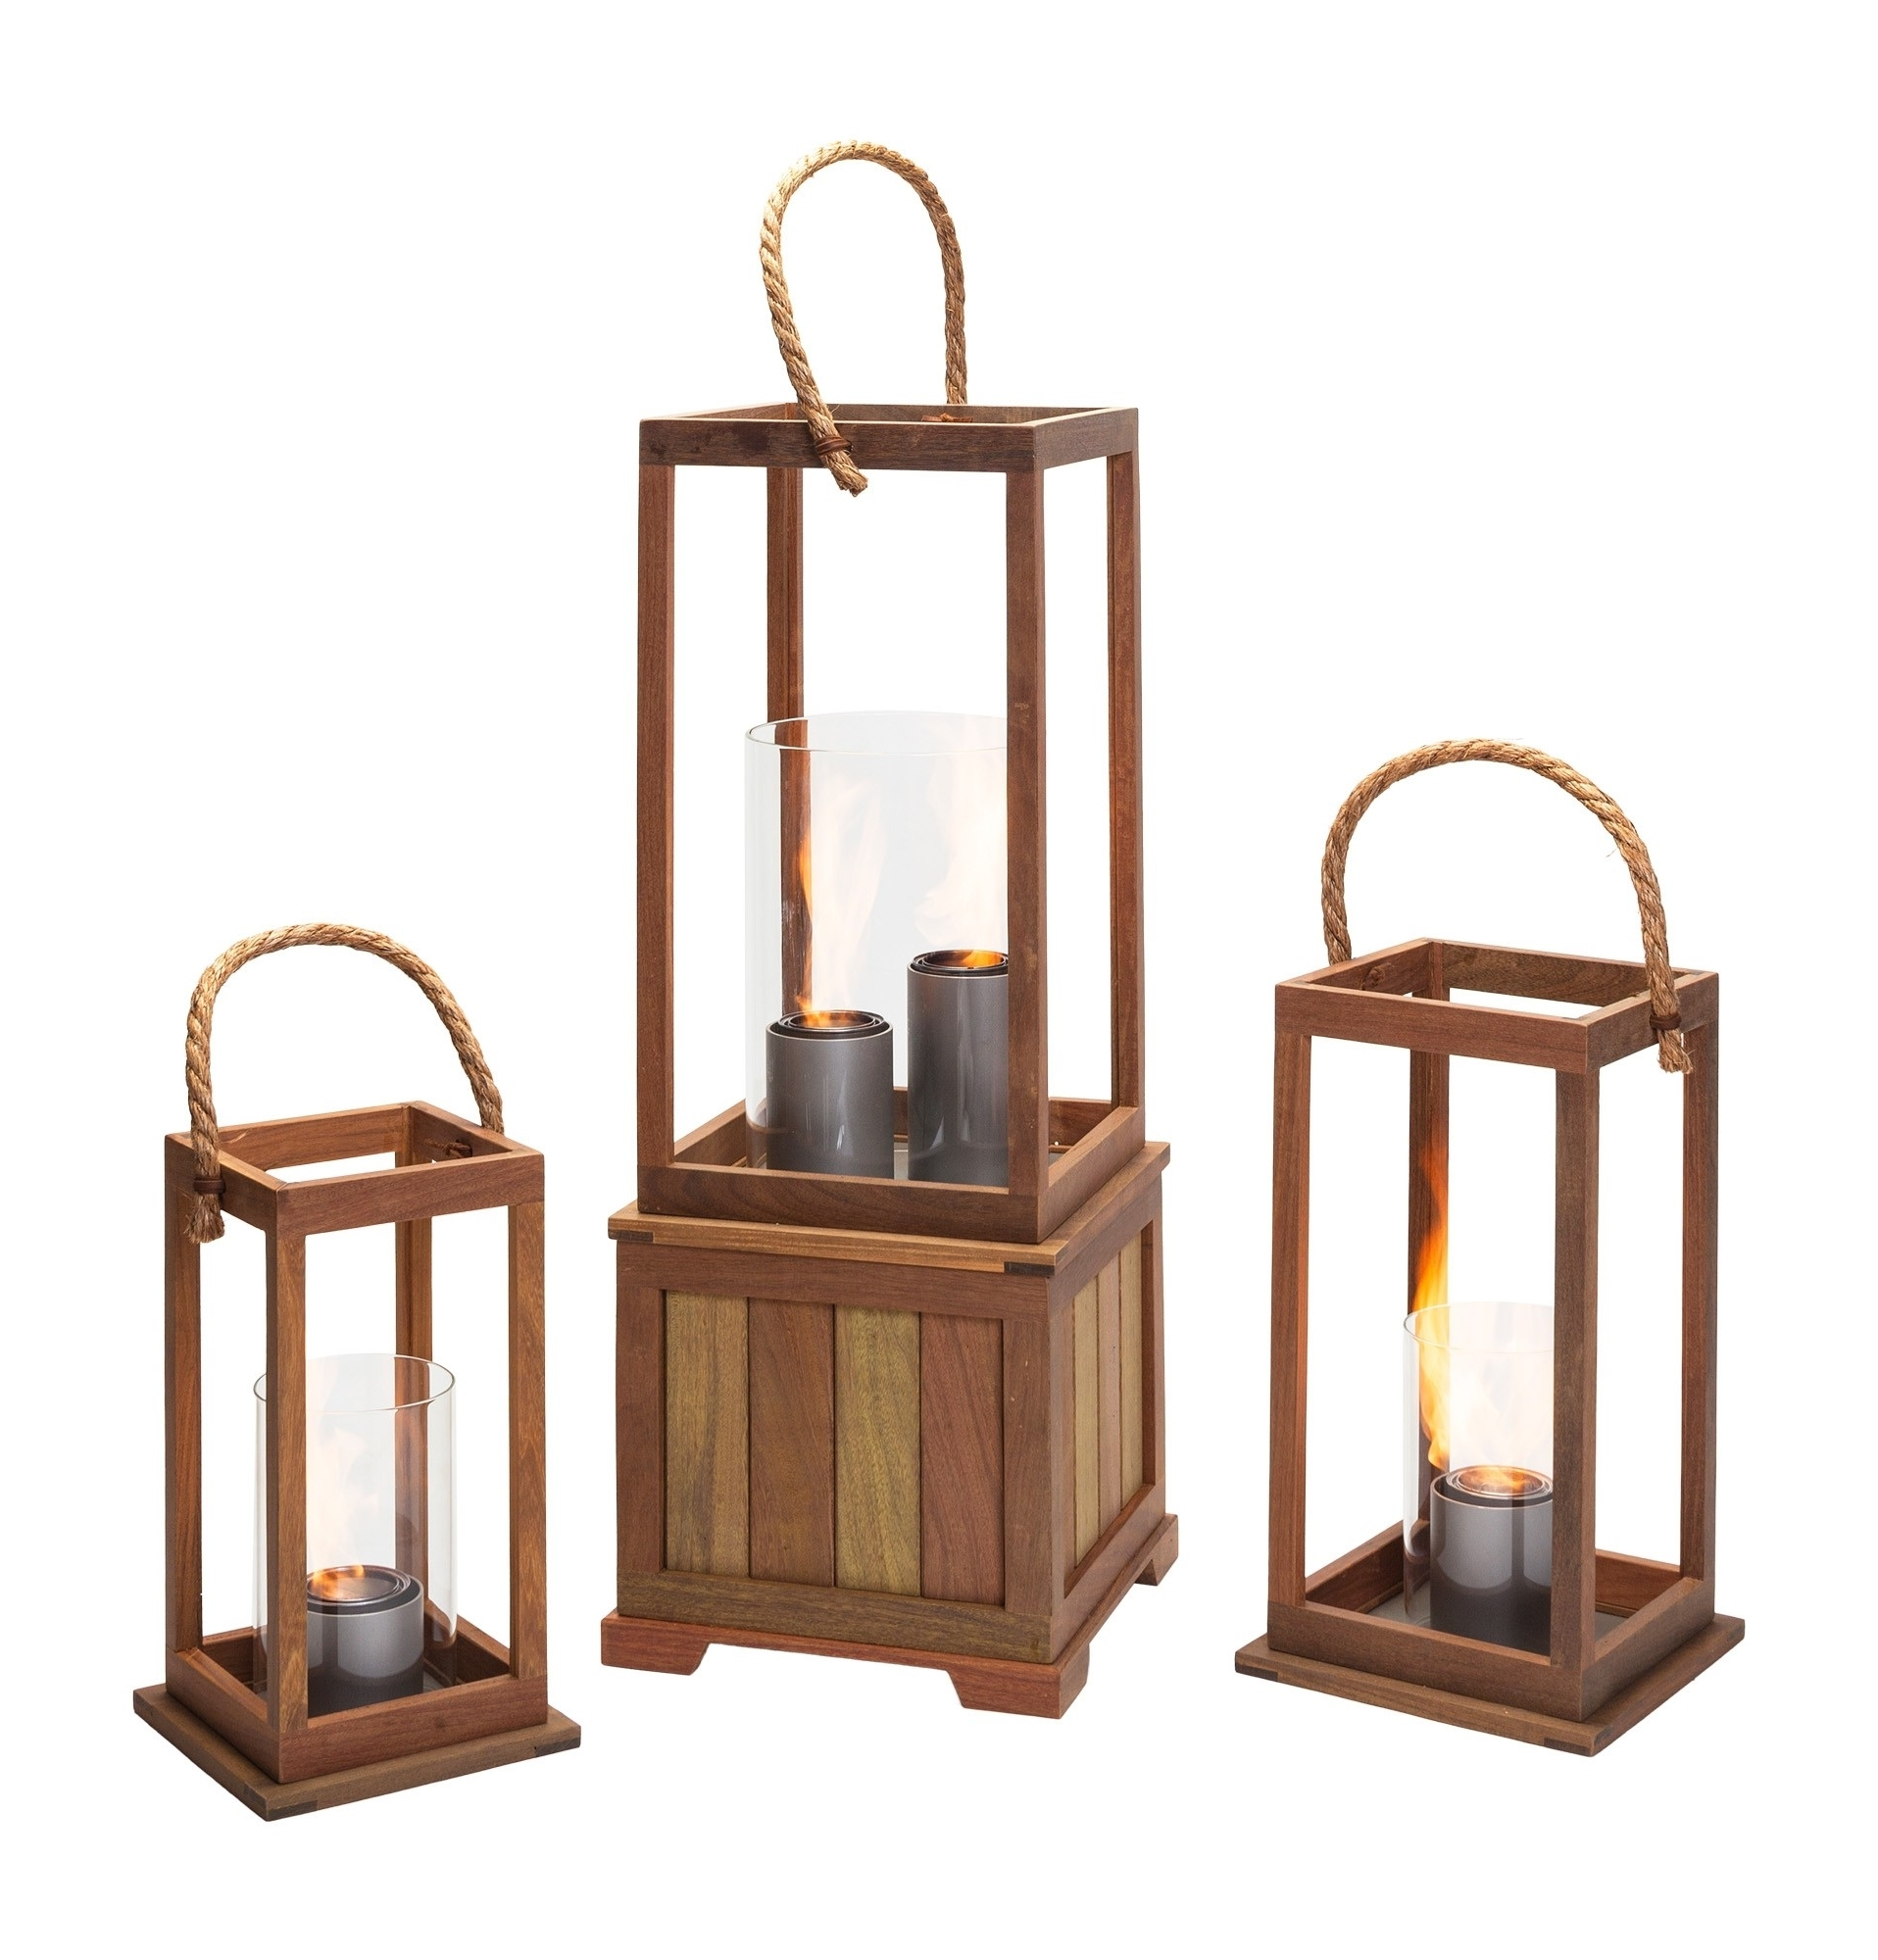 Outdoor Gel Lanterns Within Most Recent Sonoma 17 Inch Outdoor Lantern In Ipe Woodnorthcape Fire (View 12 of 20)